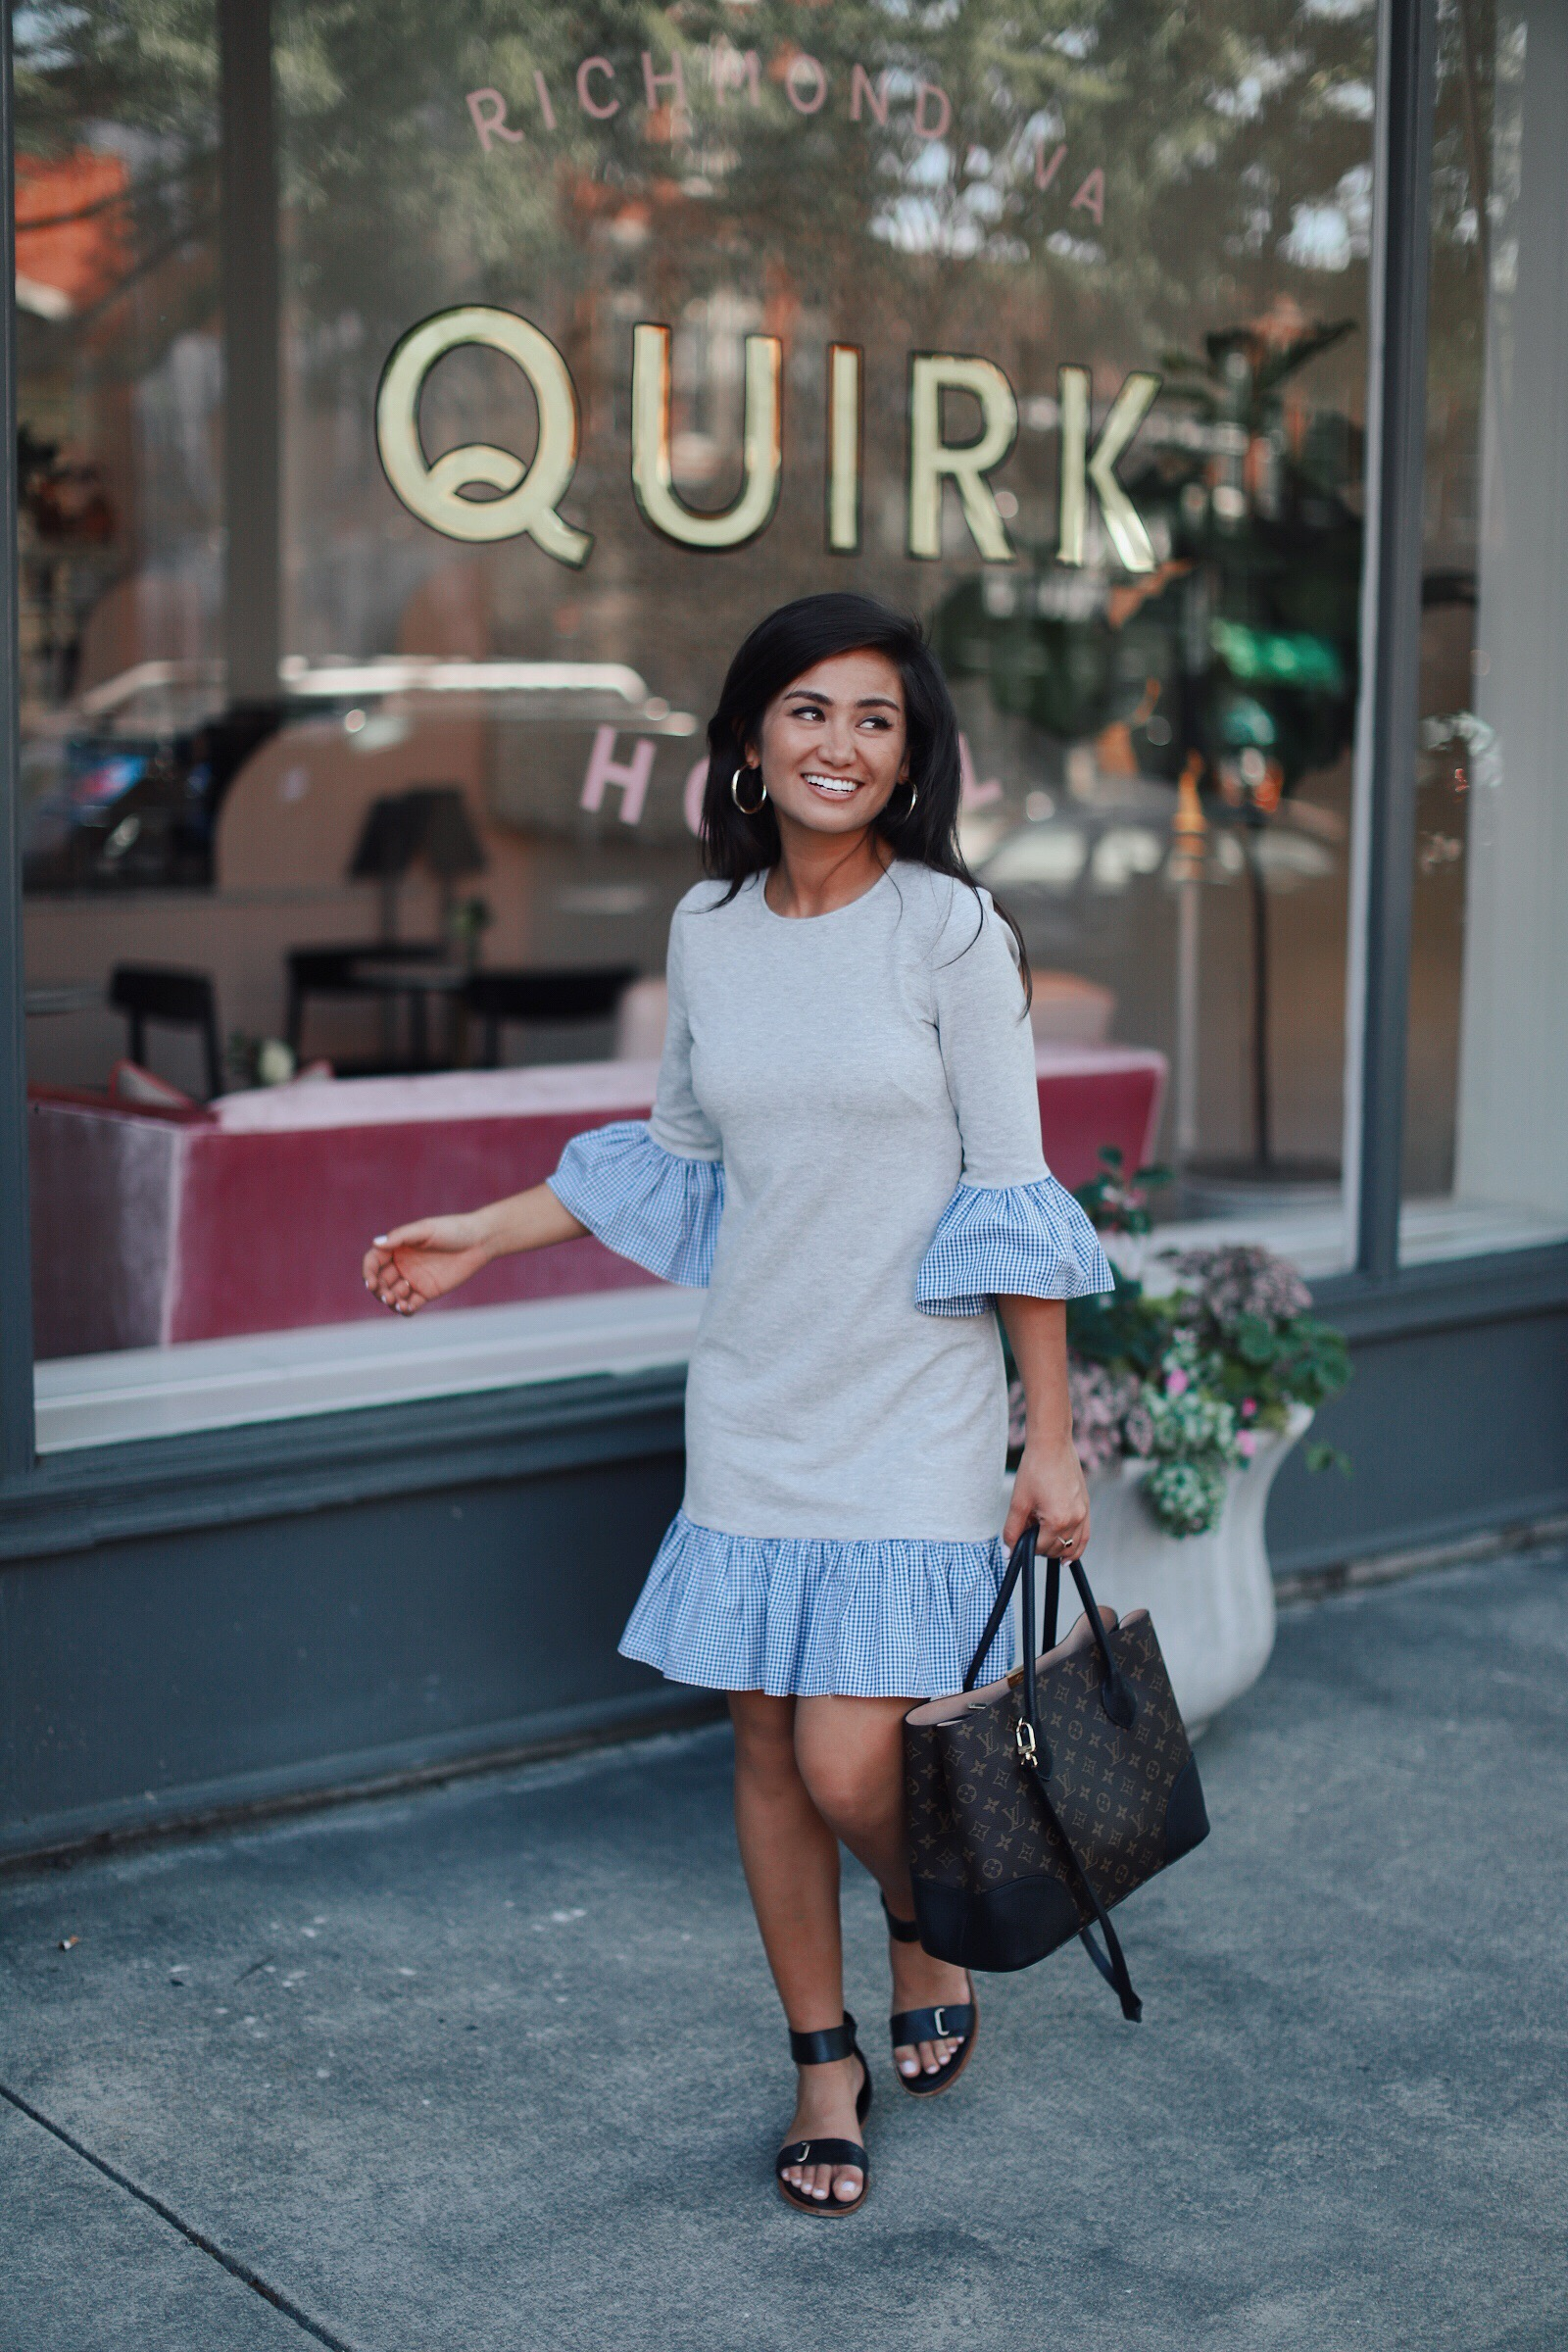 Caila Quinn The Bachelor in Richmond Virginia at the Quirk Hotel